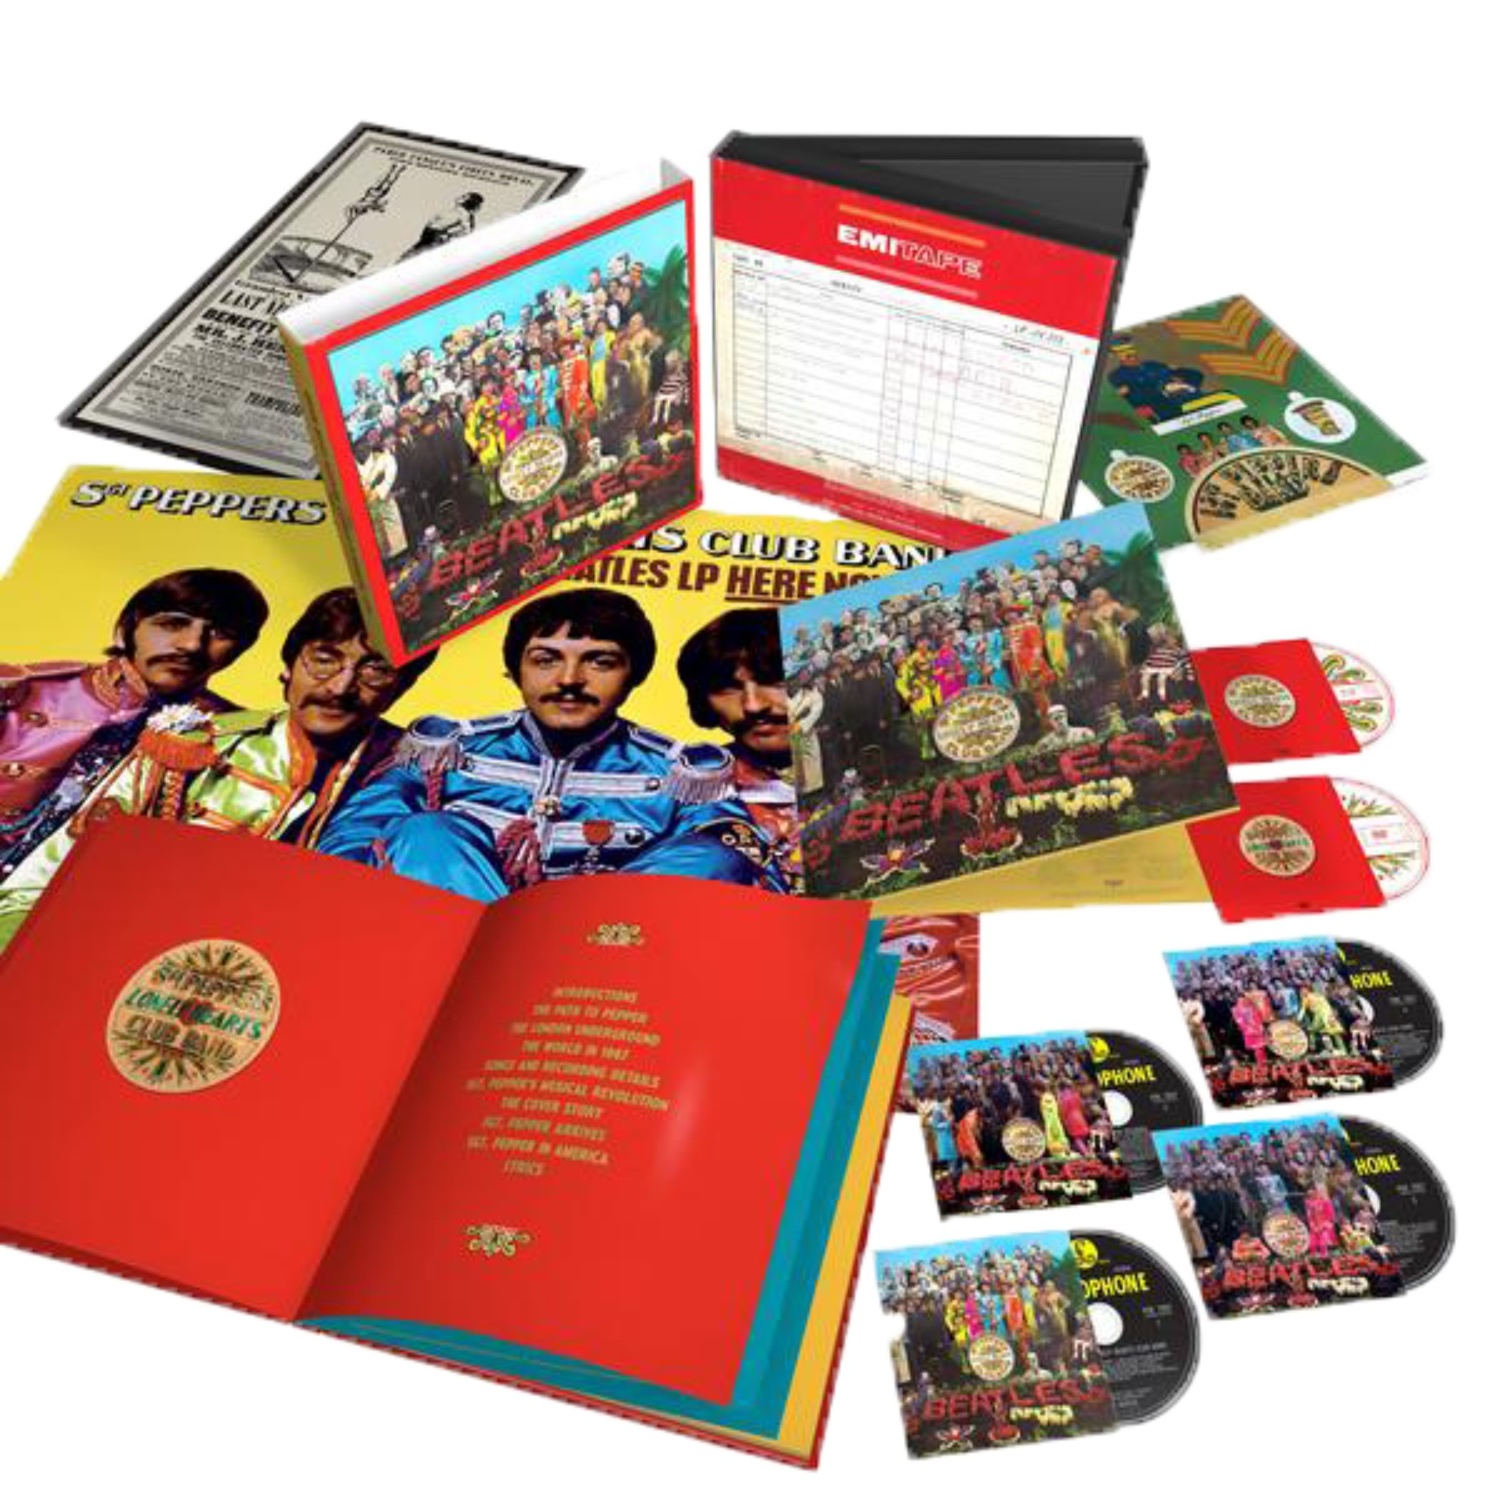 Sgt. Pepper's Lonely Hearts Club Band 6 Disc Super Deluxe (Anniversary Edition)